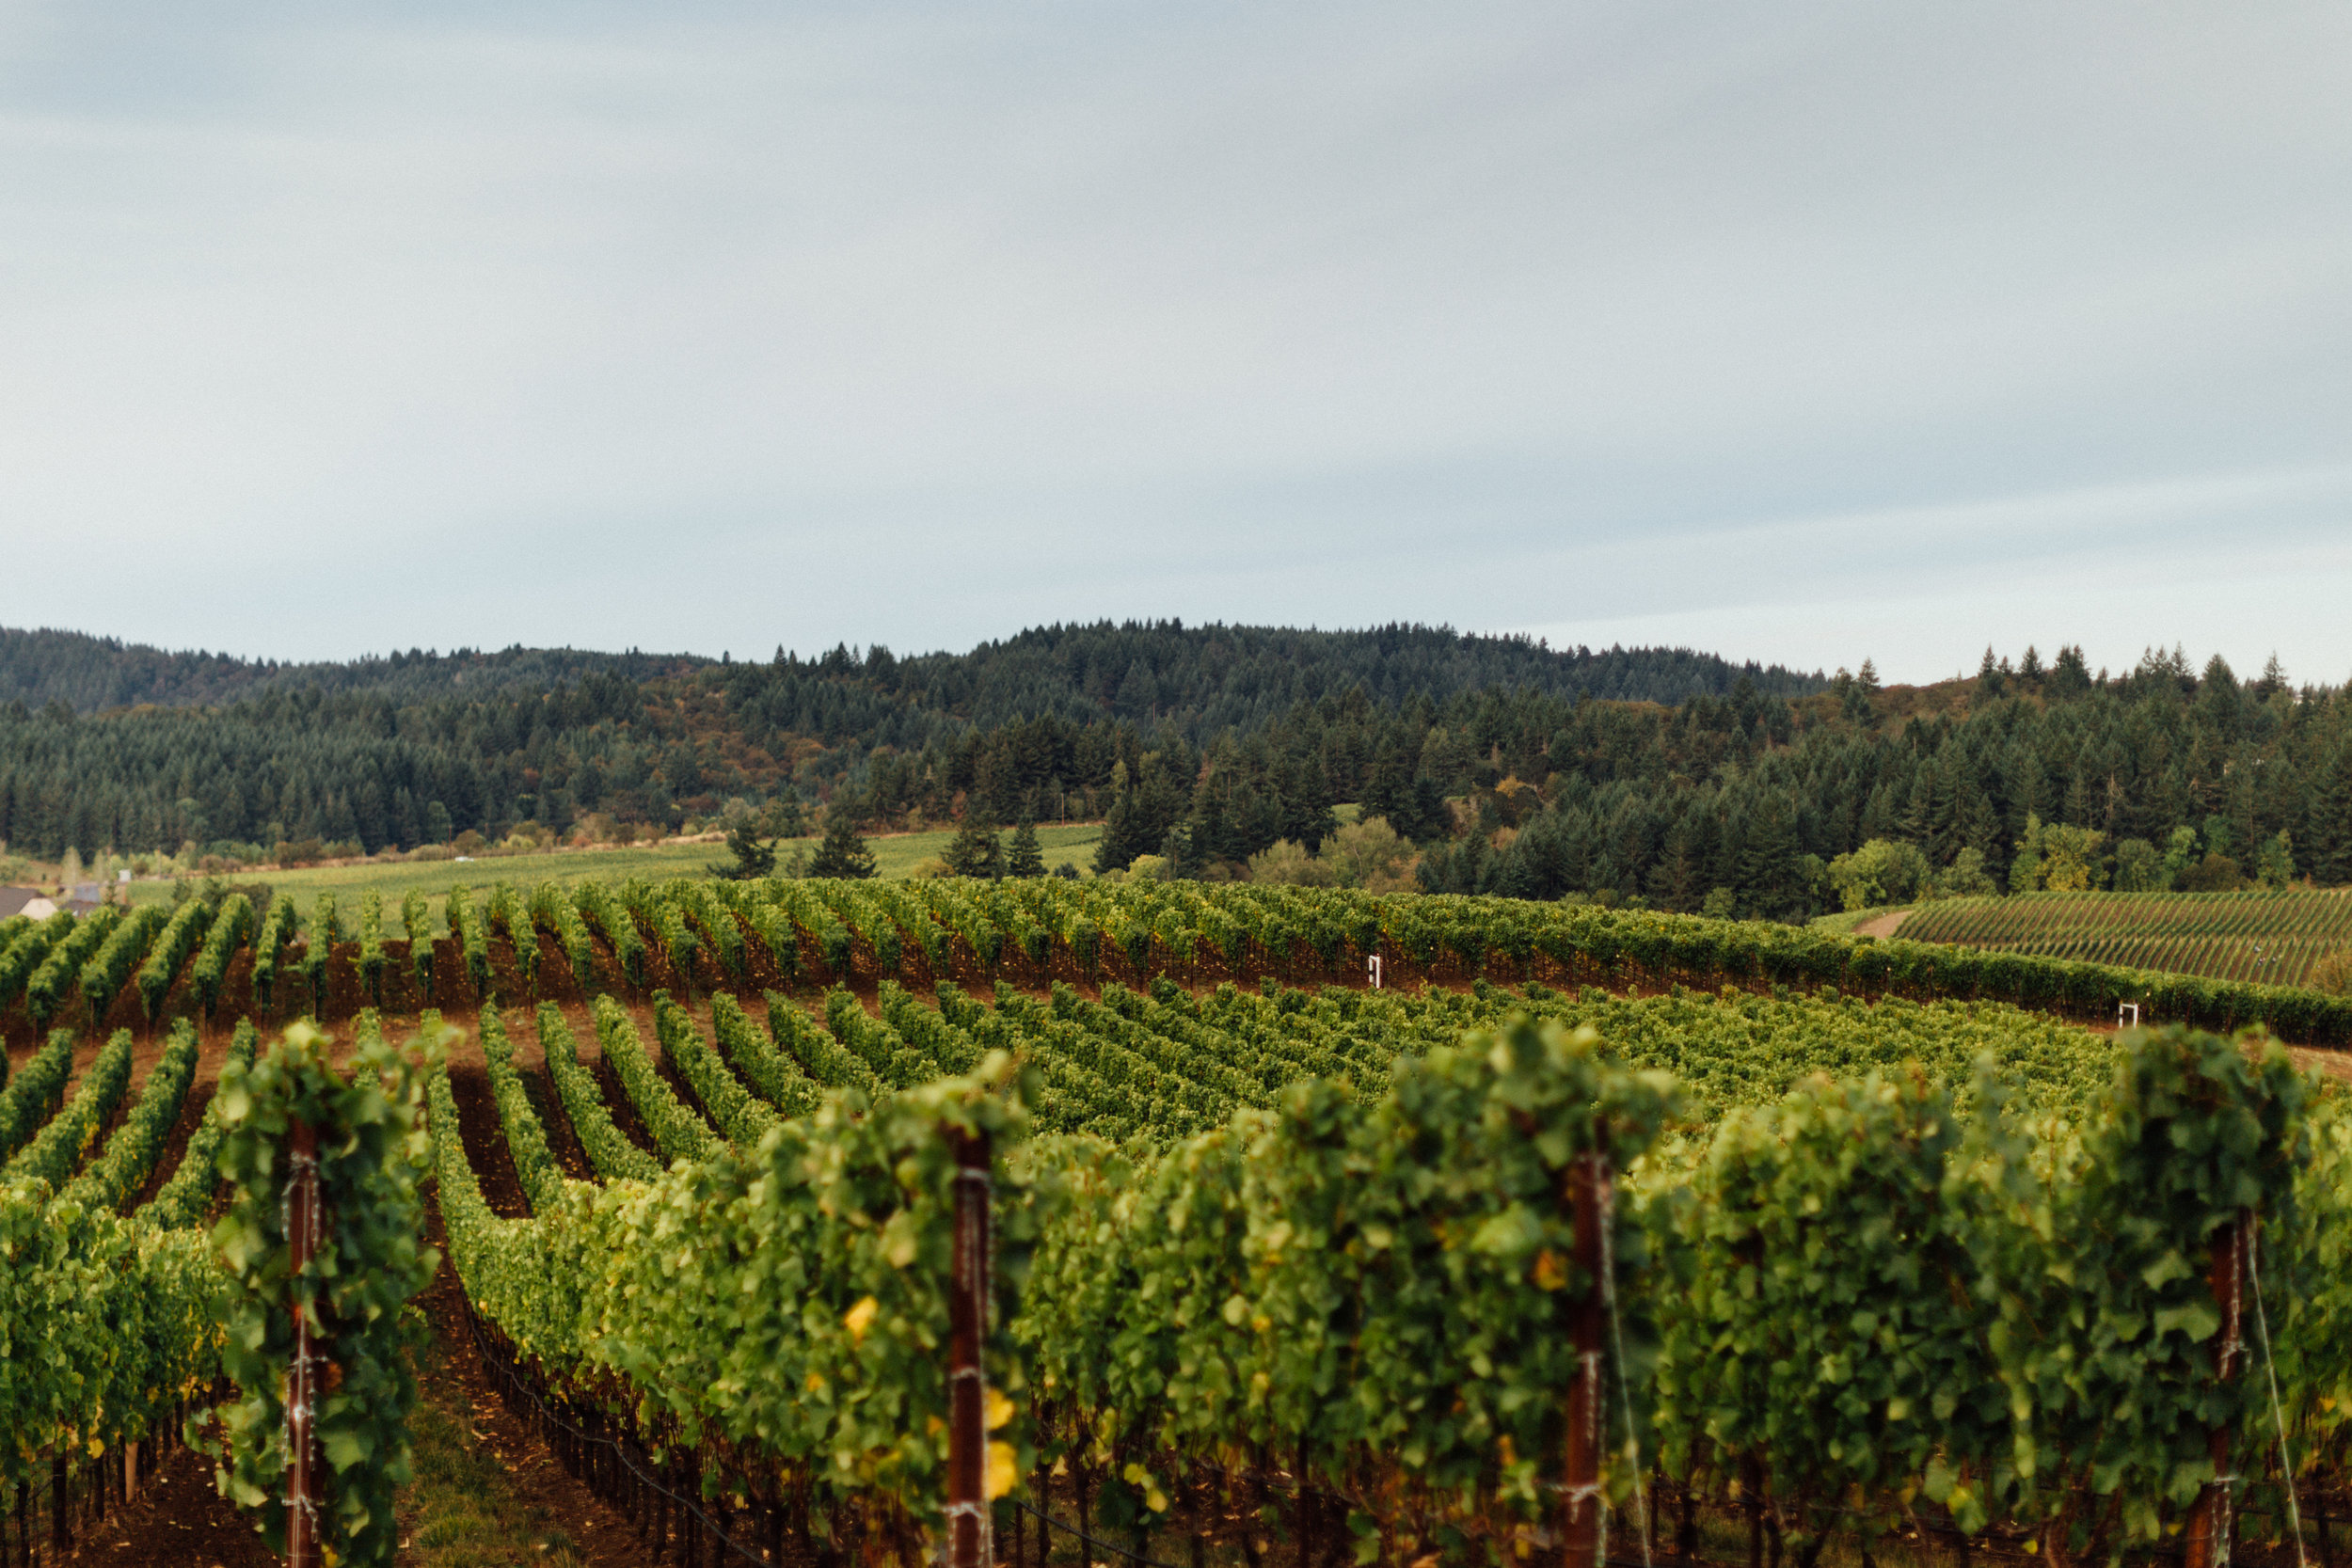 Zena Crown Vineyard